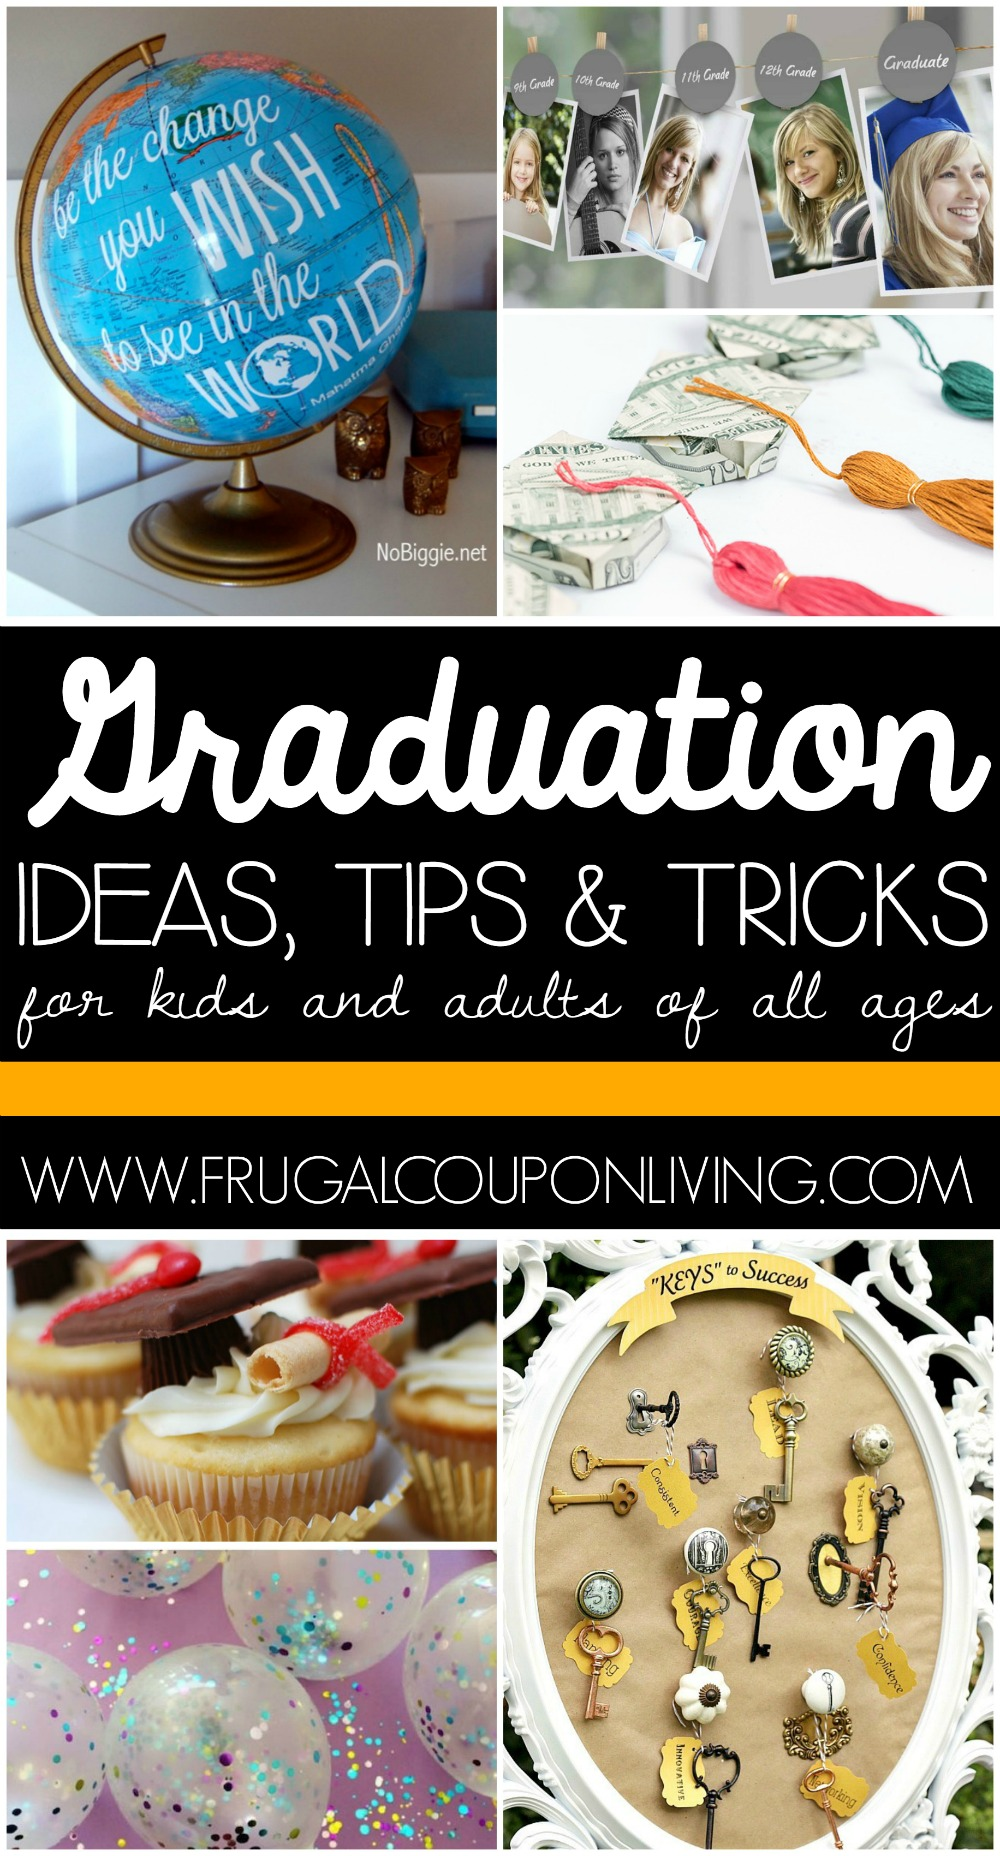 Graduation-ideas-tips-frugal-coupon-living